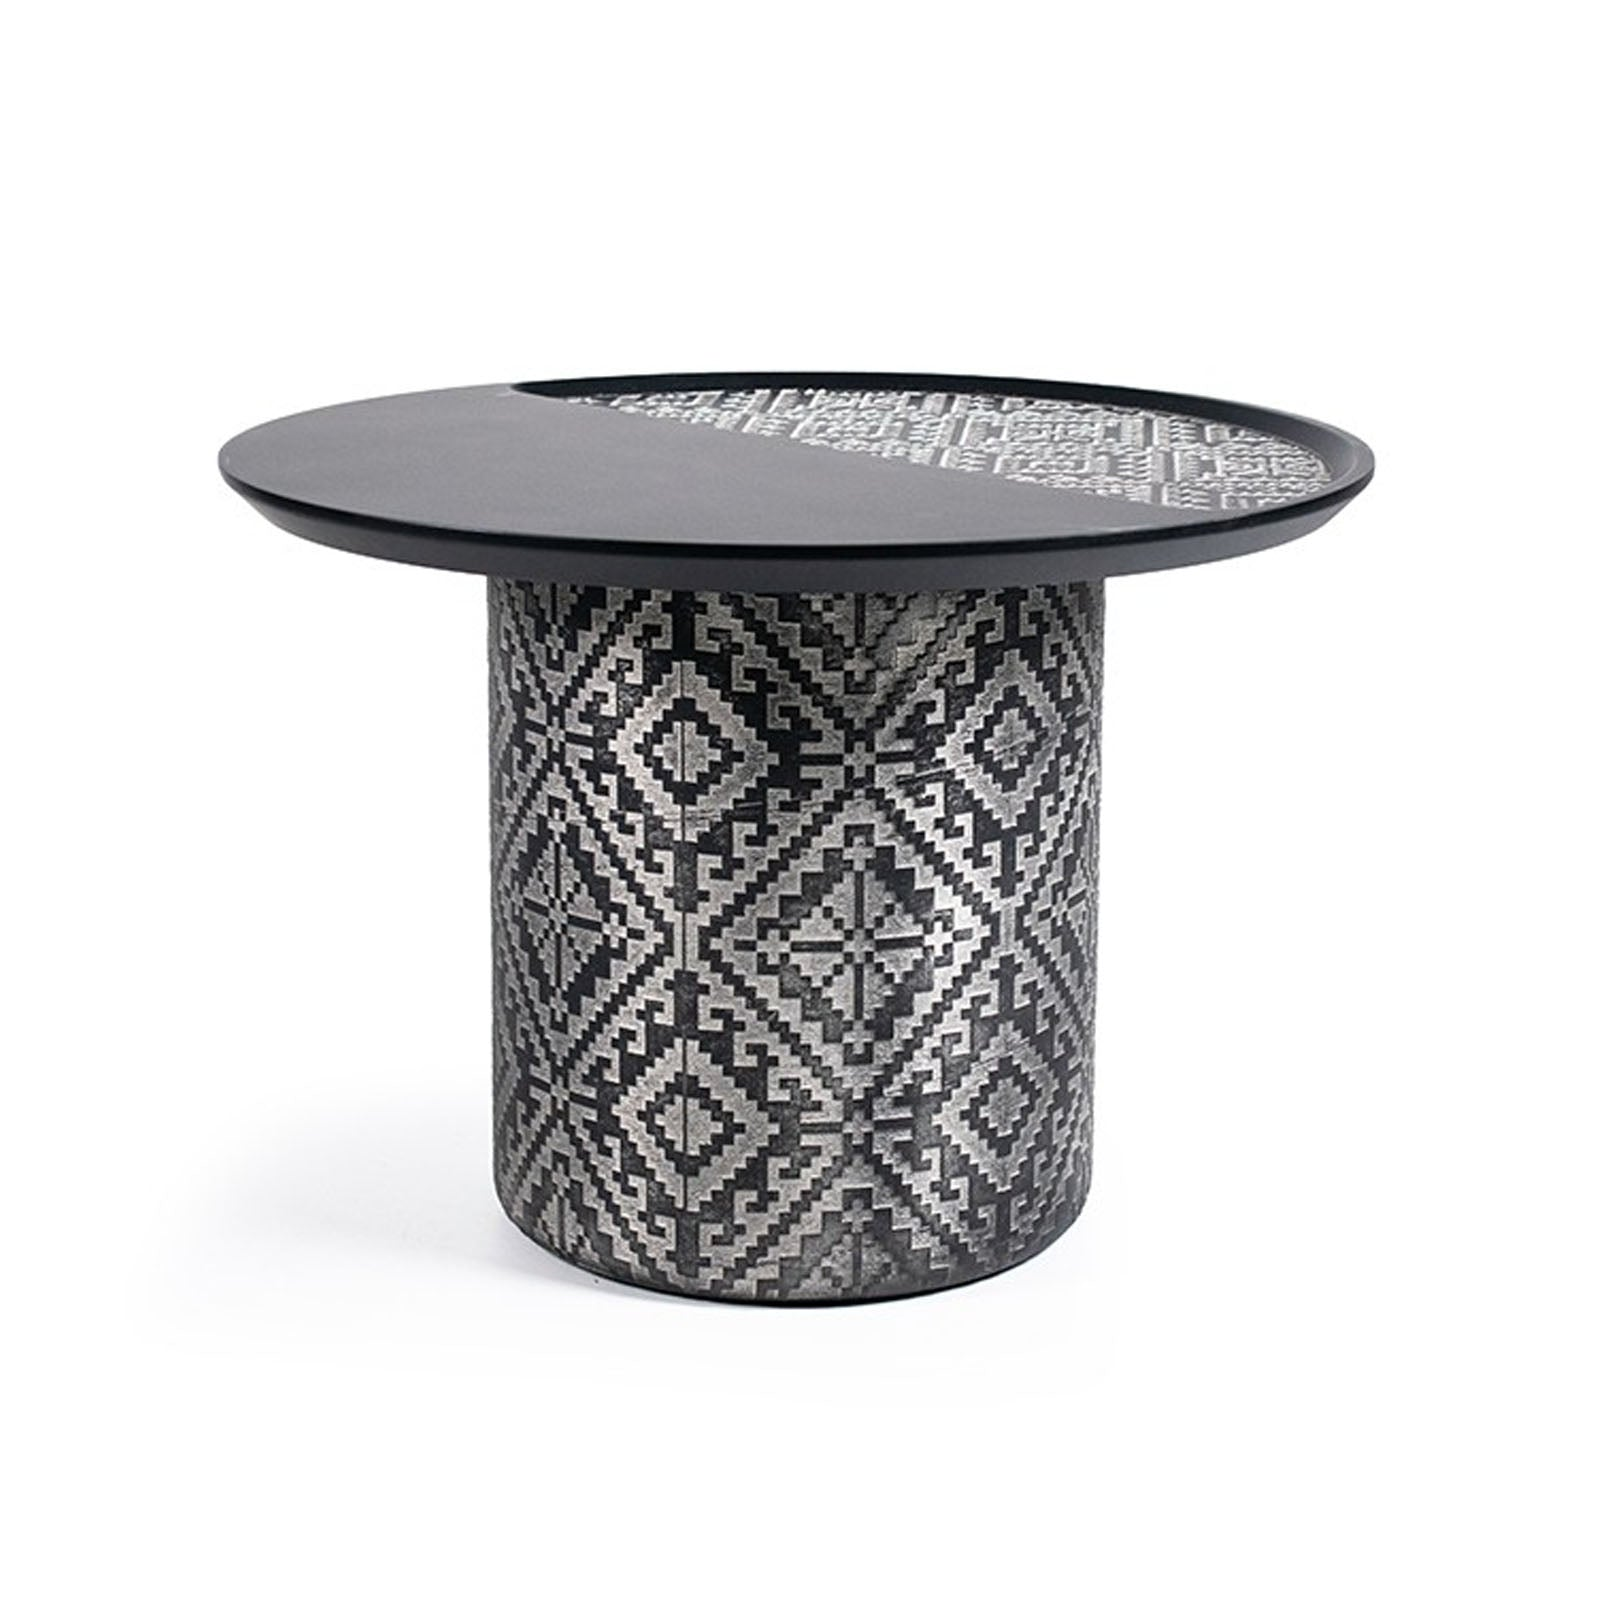 Motif Side  Table Motif-Side002 -  طاولة جانبية من موتيف - Shop Online Furniture and Home Decor Store in Dubai, UAE at ebarza